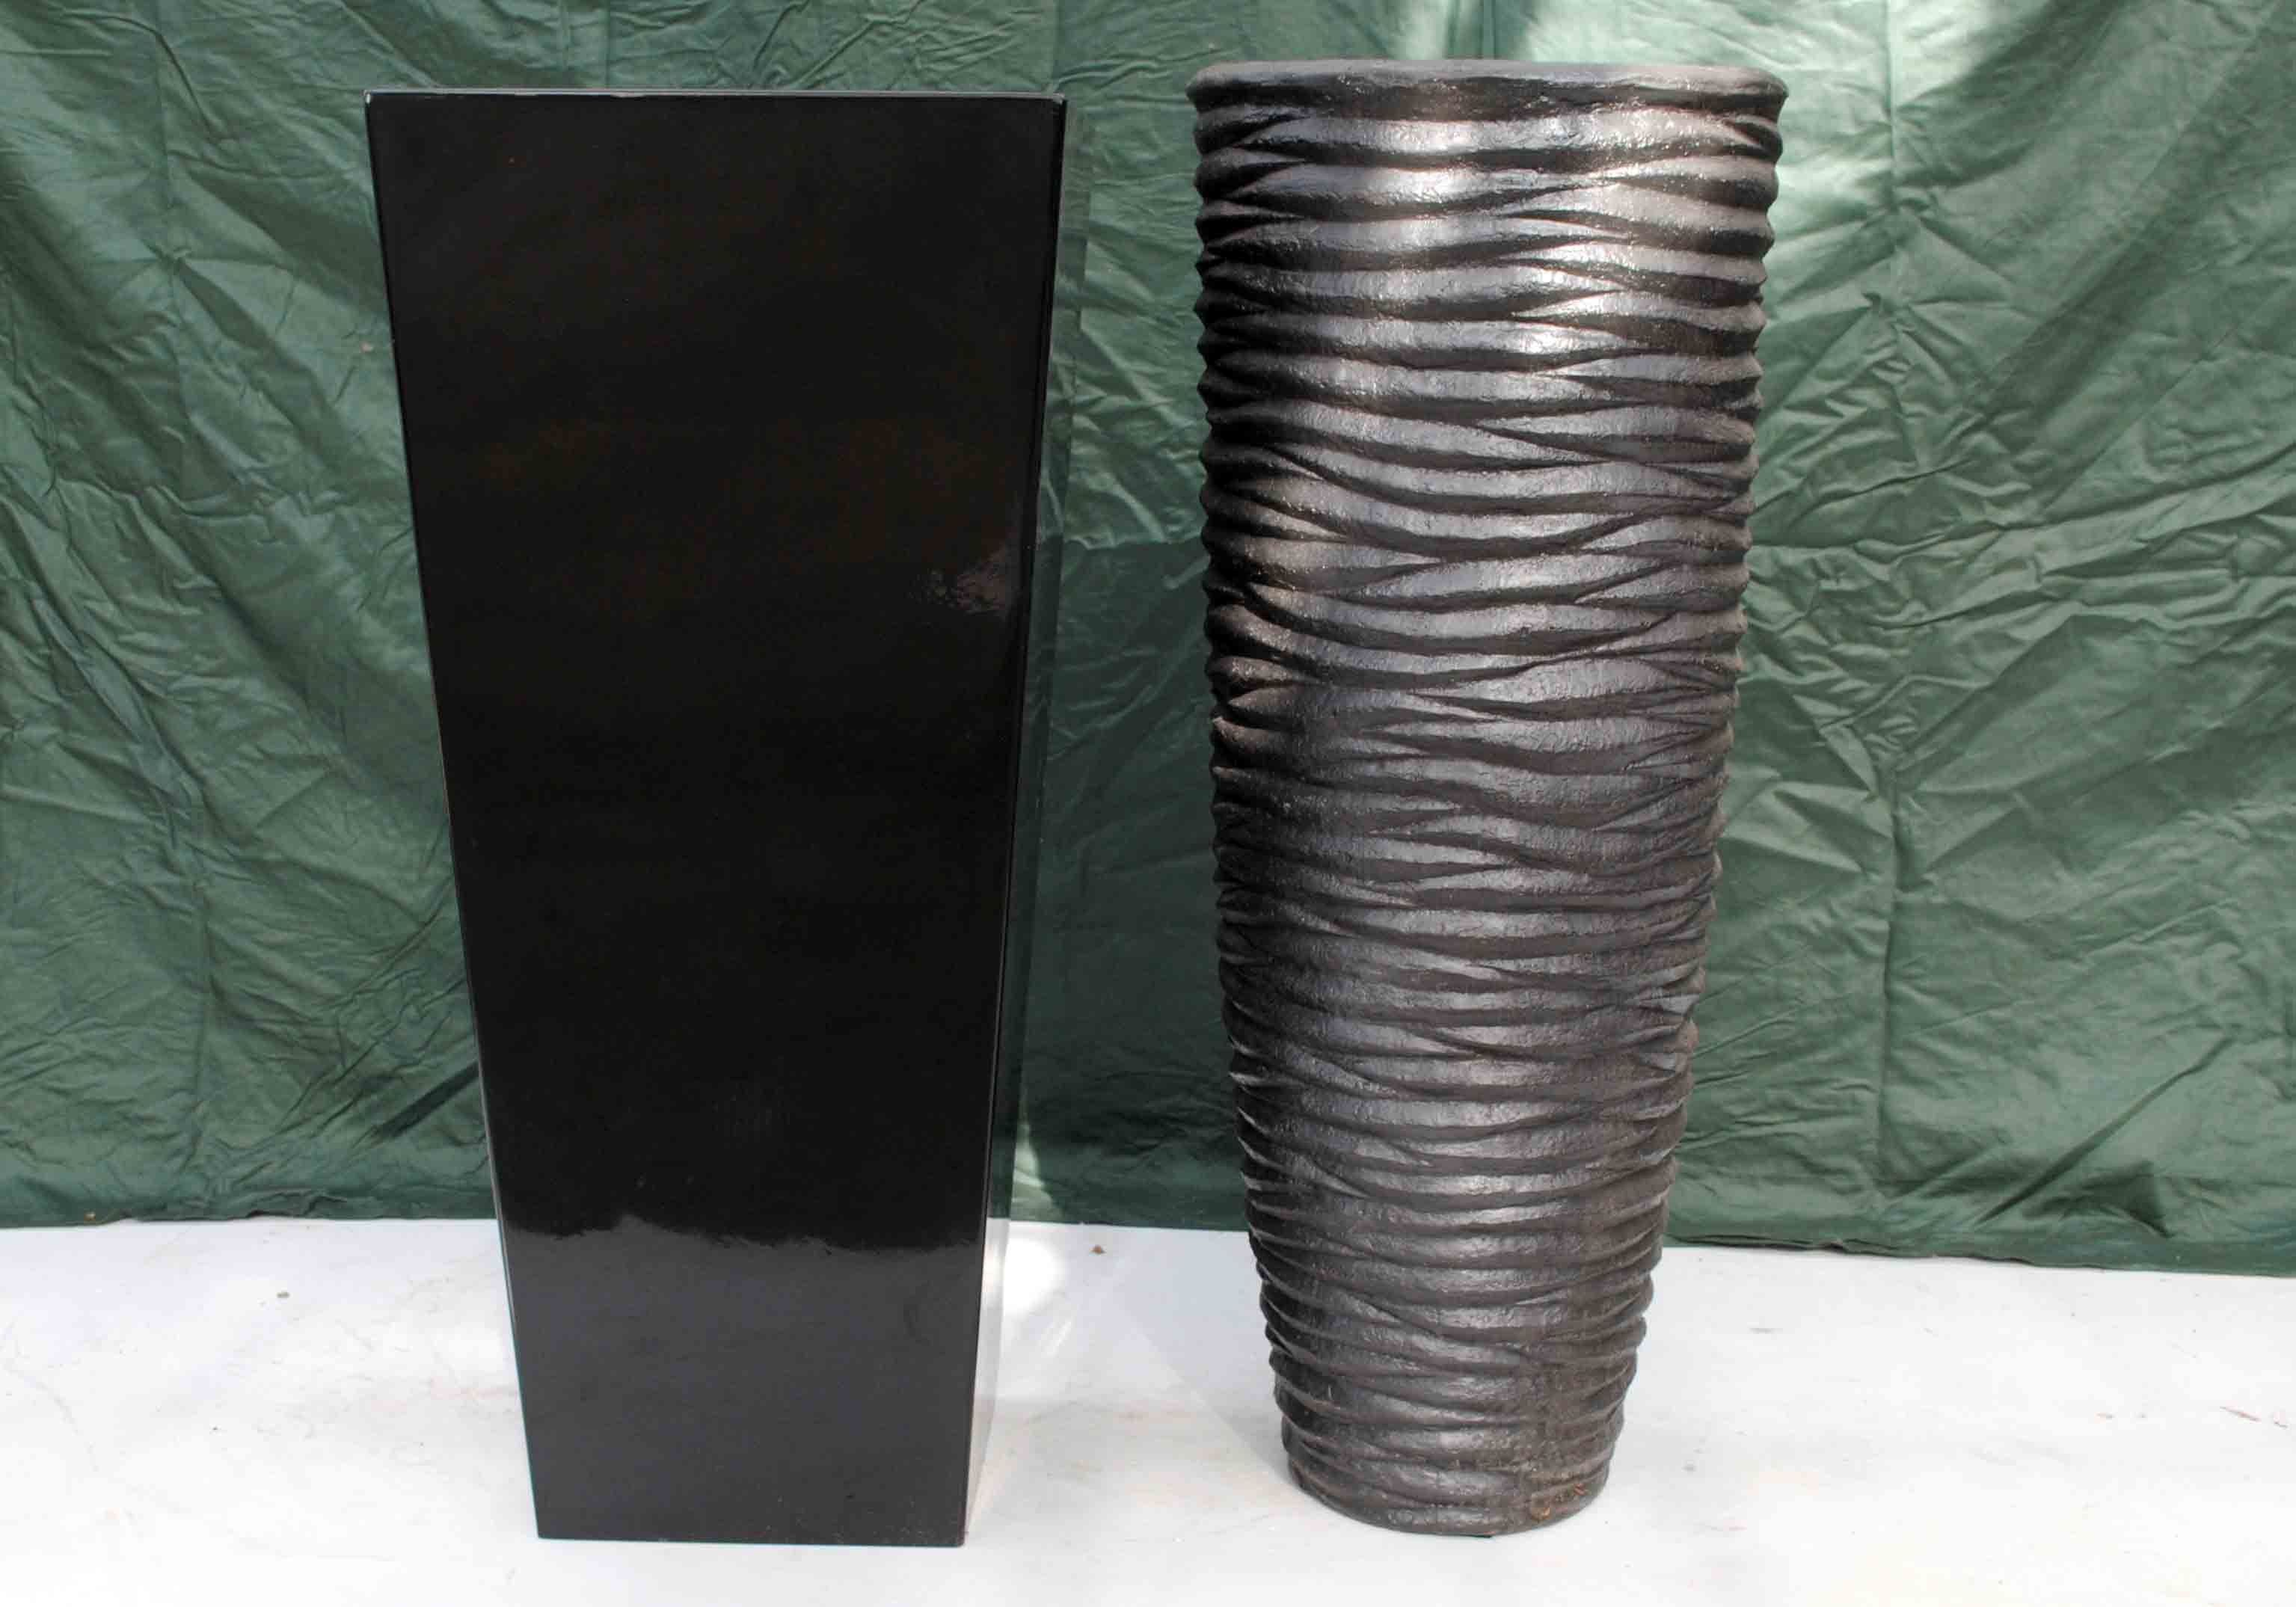 stone vases for sale of tall black fibreglass and black stone effect planters grand spring with regard to tall black fibreglass and black stone effect planters